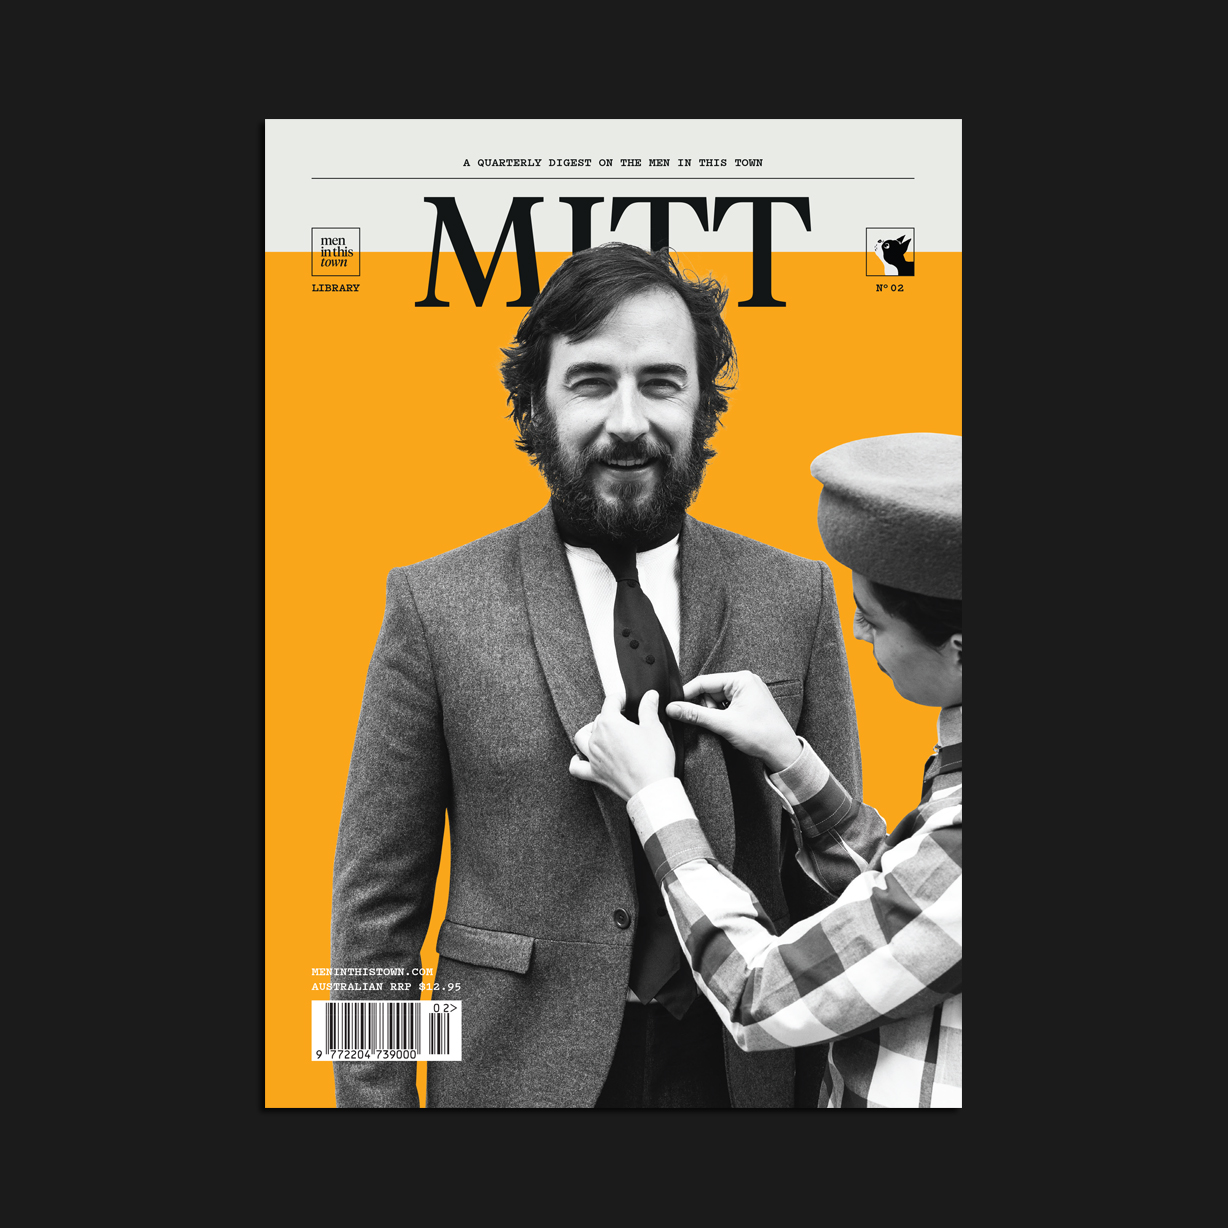 Ladies and gentlemen,  MITT  issue 2 is now available to  pre-order !  After the amazing success of  issue 1 , we're really excited to get our second offering out to you. This issue features some inspiring interviews with creative director of The New Yorker,   Wyatt Mitchell  , our cover stars   Paul Garcia de Oteyza   and   Caterina Paneda   of Sastreria 91 and many  more .  Copies will be available on Australian newsstands from June 11th with international stockists a few weeks later.